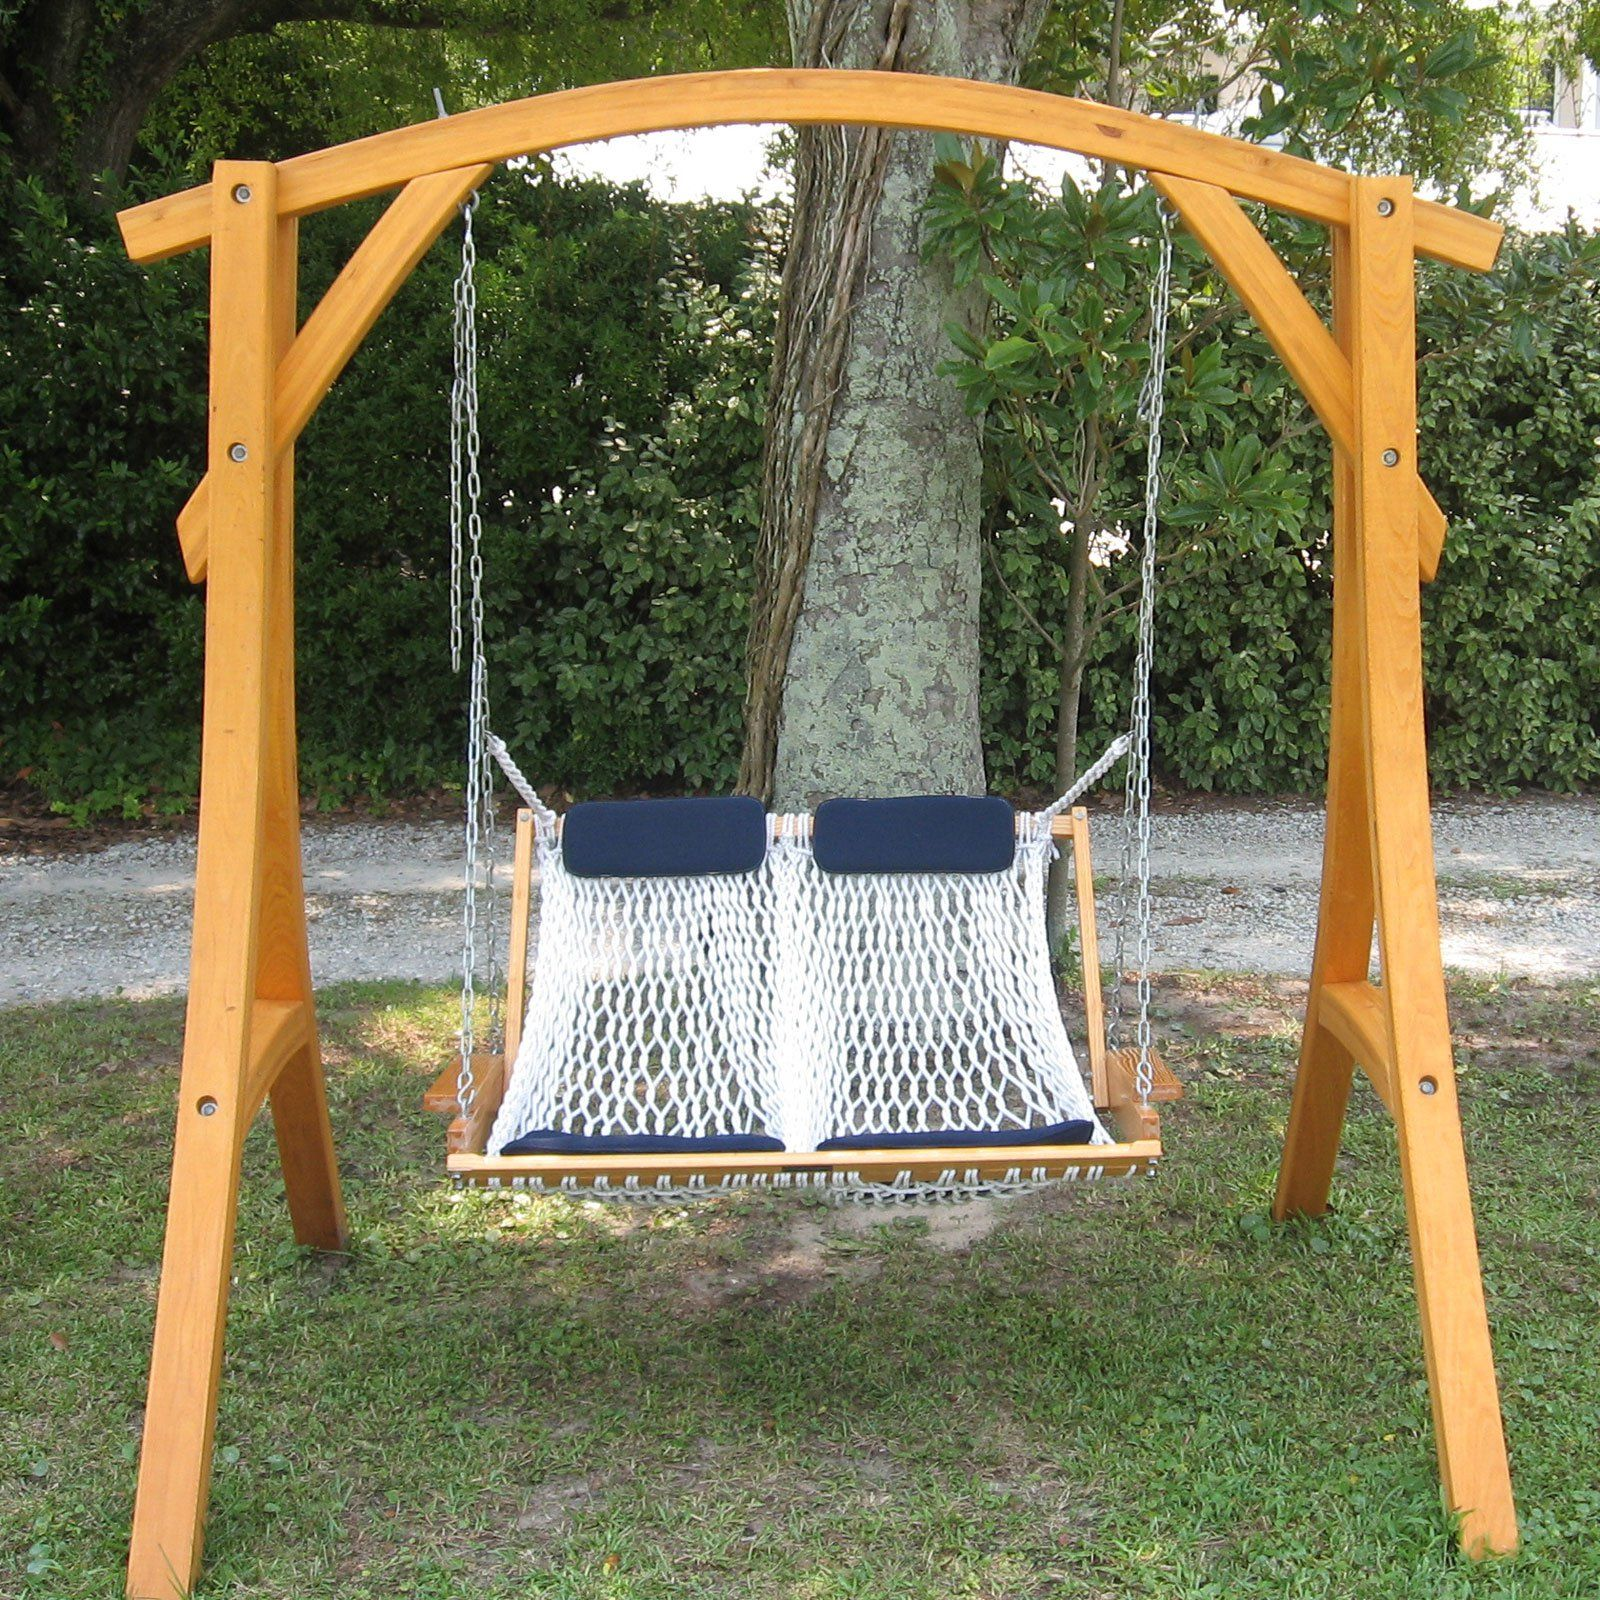 cover hires swing smsender deluxe bent tulum porch co hammock oak